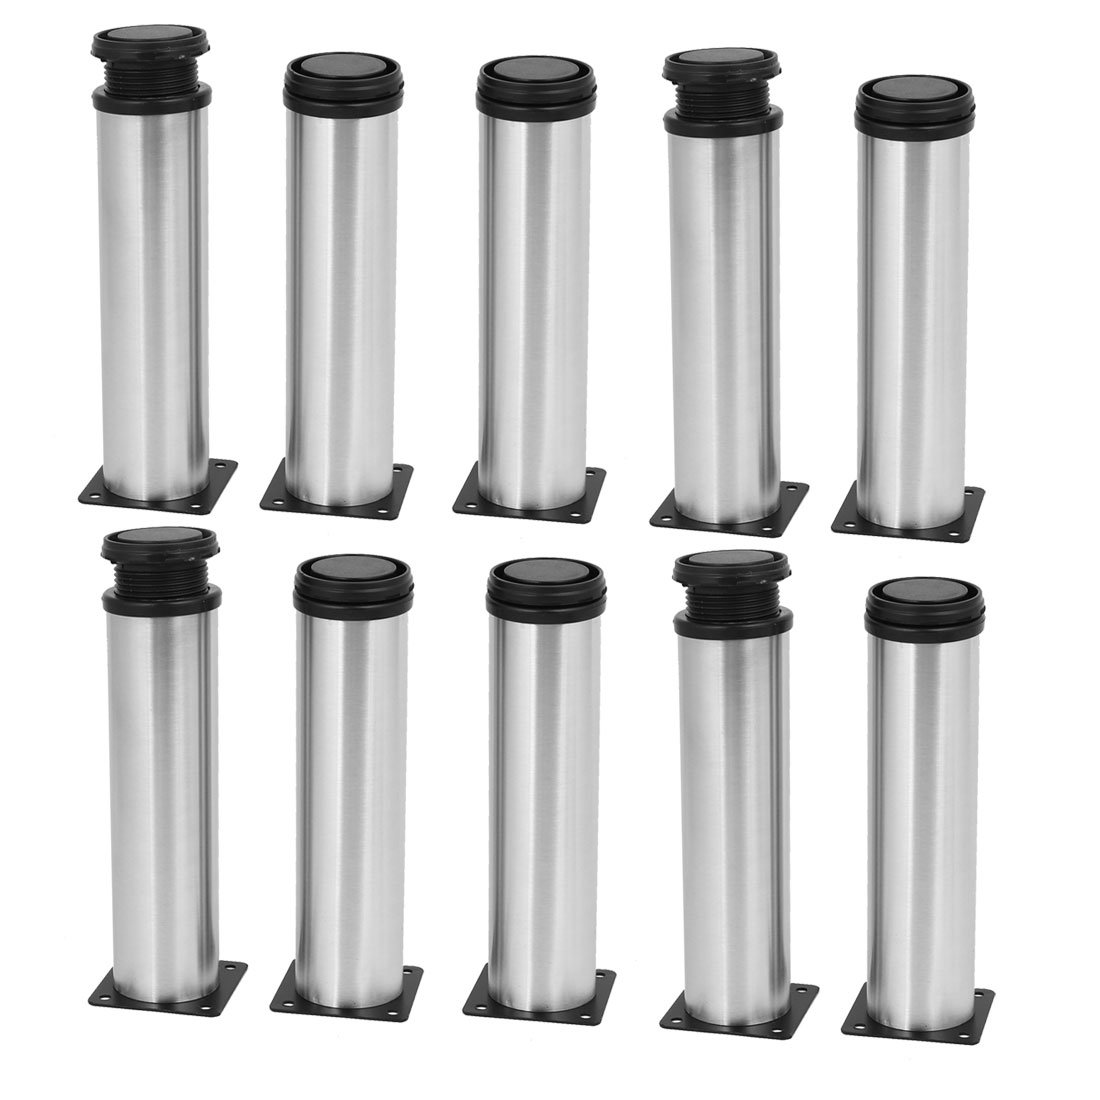 uxcell 50mm x 200mm Metal Adjustable Table Cabinet Feet Leg Round Stand 10PCS